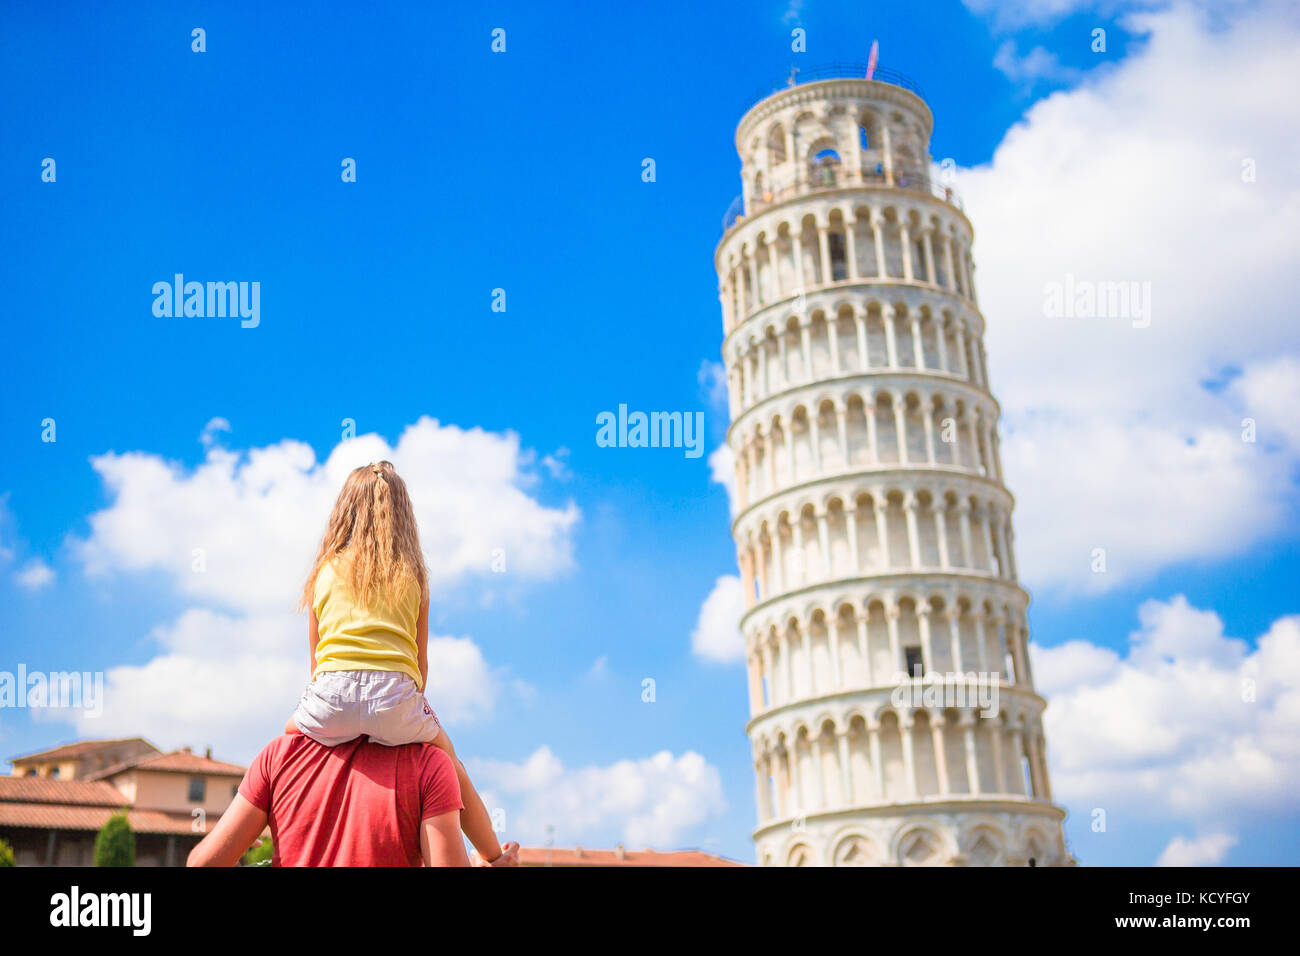 Pisa - travel to famous places in Europe, family portrait in background the Leaning Tower in Pisa, Italy - Stock Image